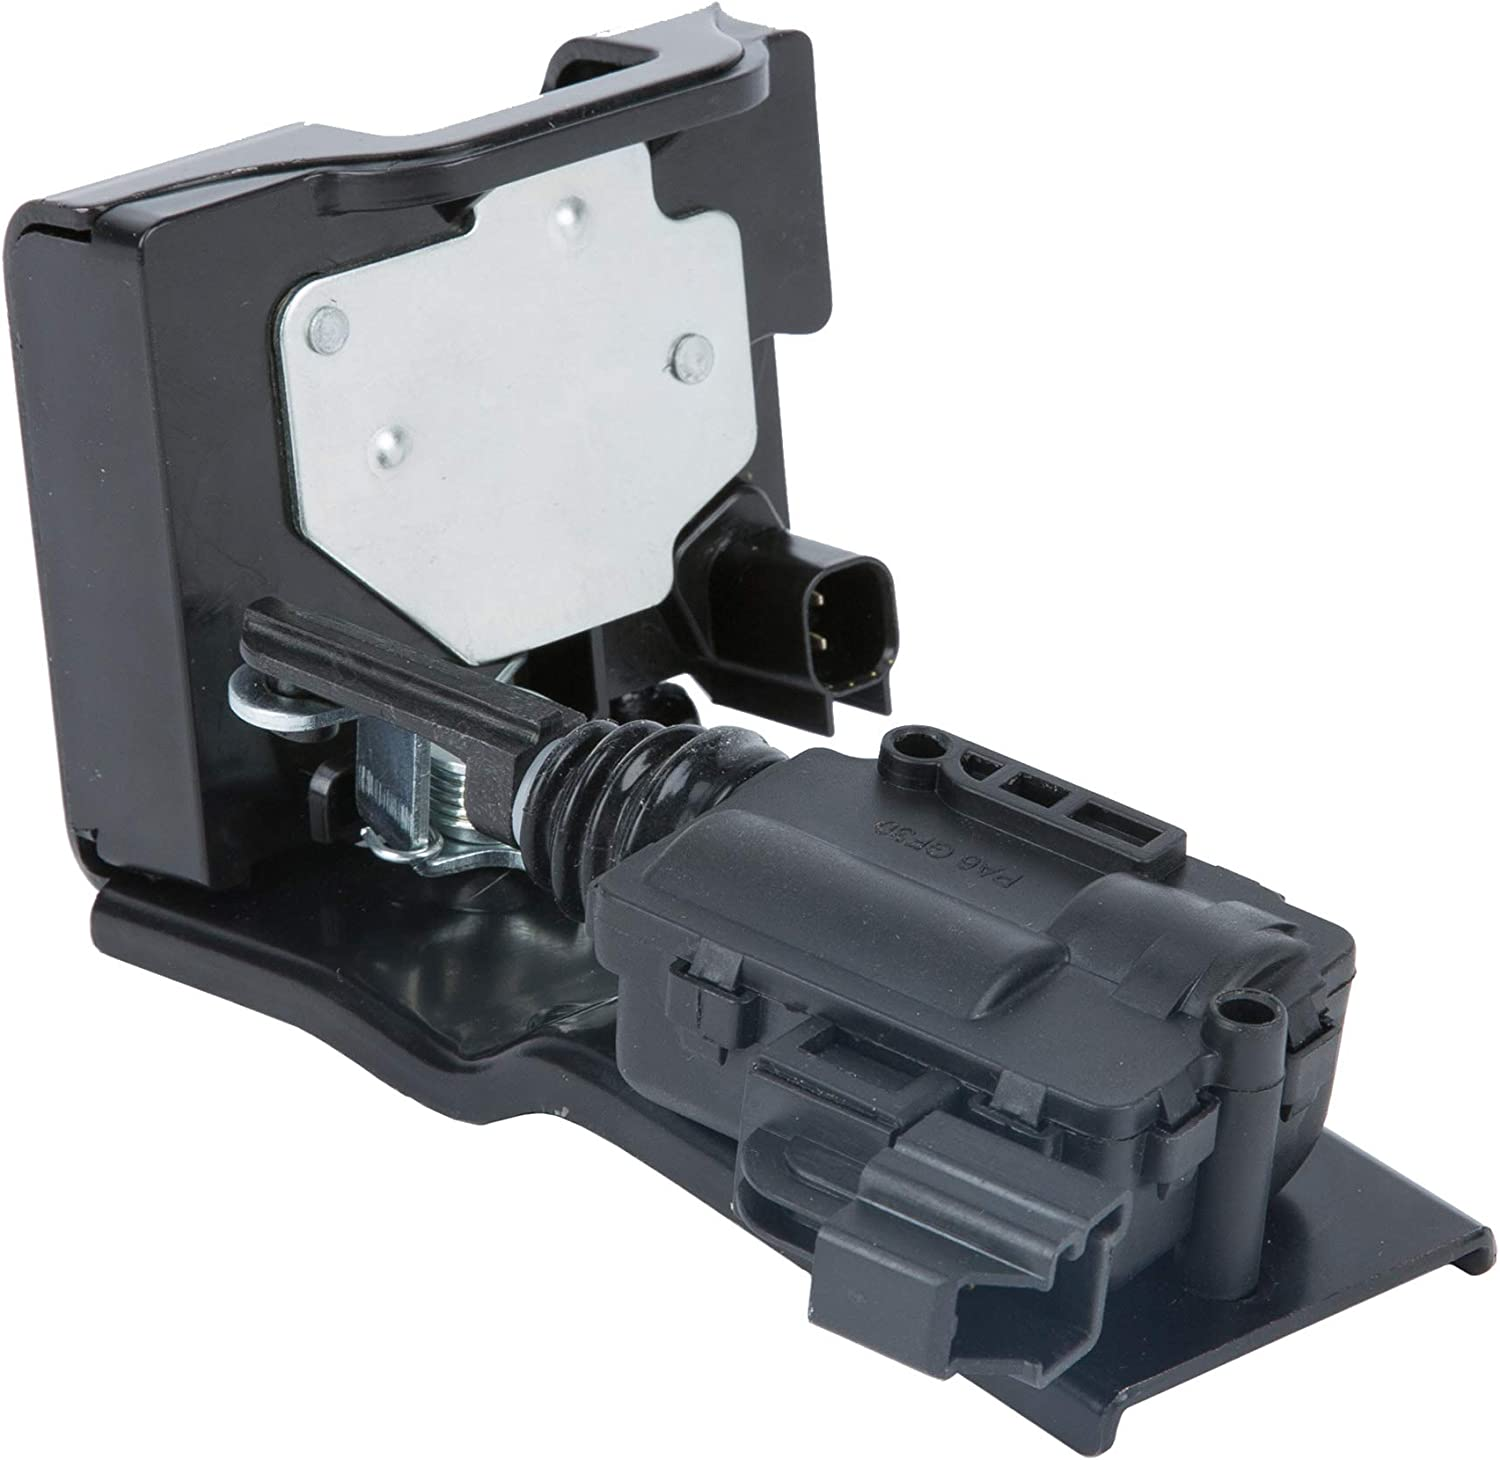 Orion Motor Tech Integrated Rear Hatch Lift Gate Tailgate Door Latch Lock Actuator Motor Fits 2008-2012 Ford Escape Mercury Mariner Mazda Tribute REPLACES PART# 9L8Z-7843150-B 9L8Z7843150B 937-663